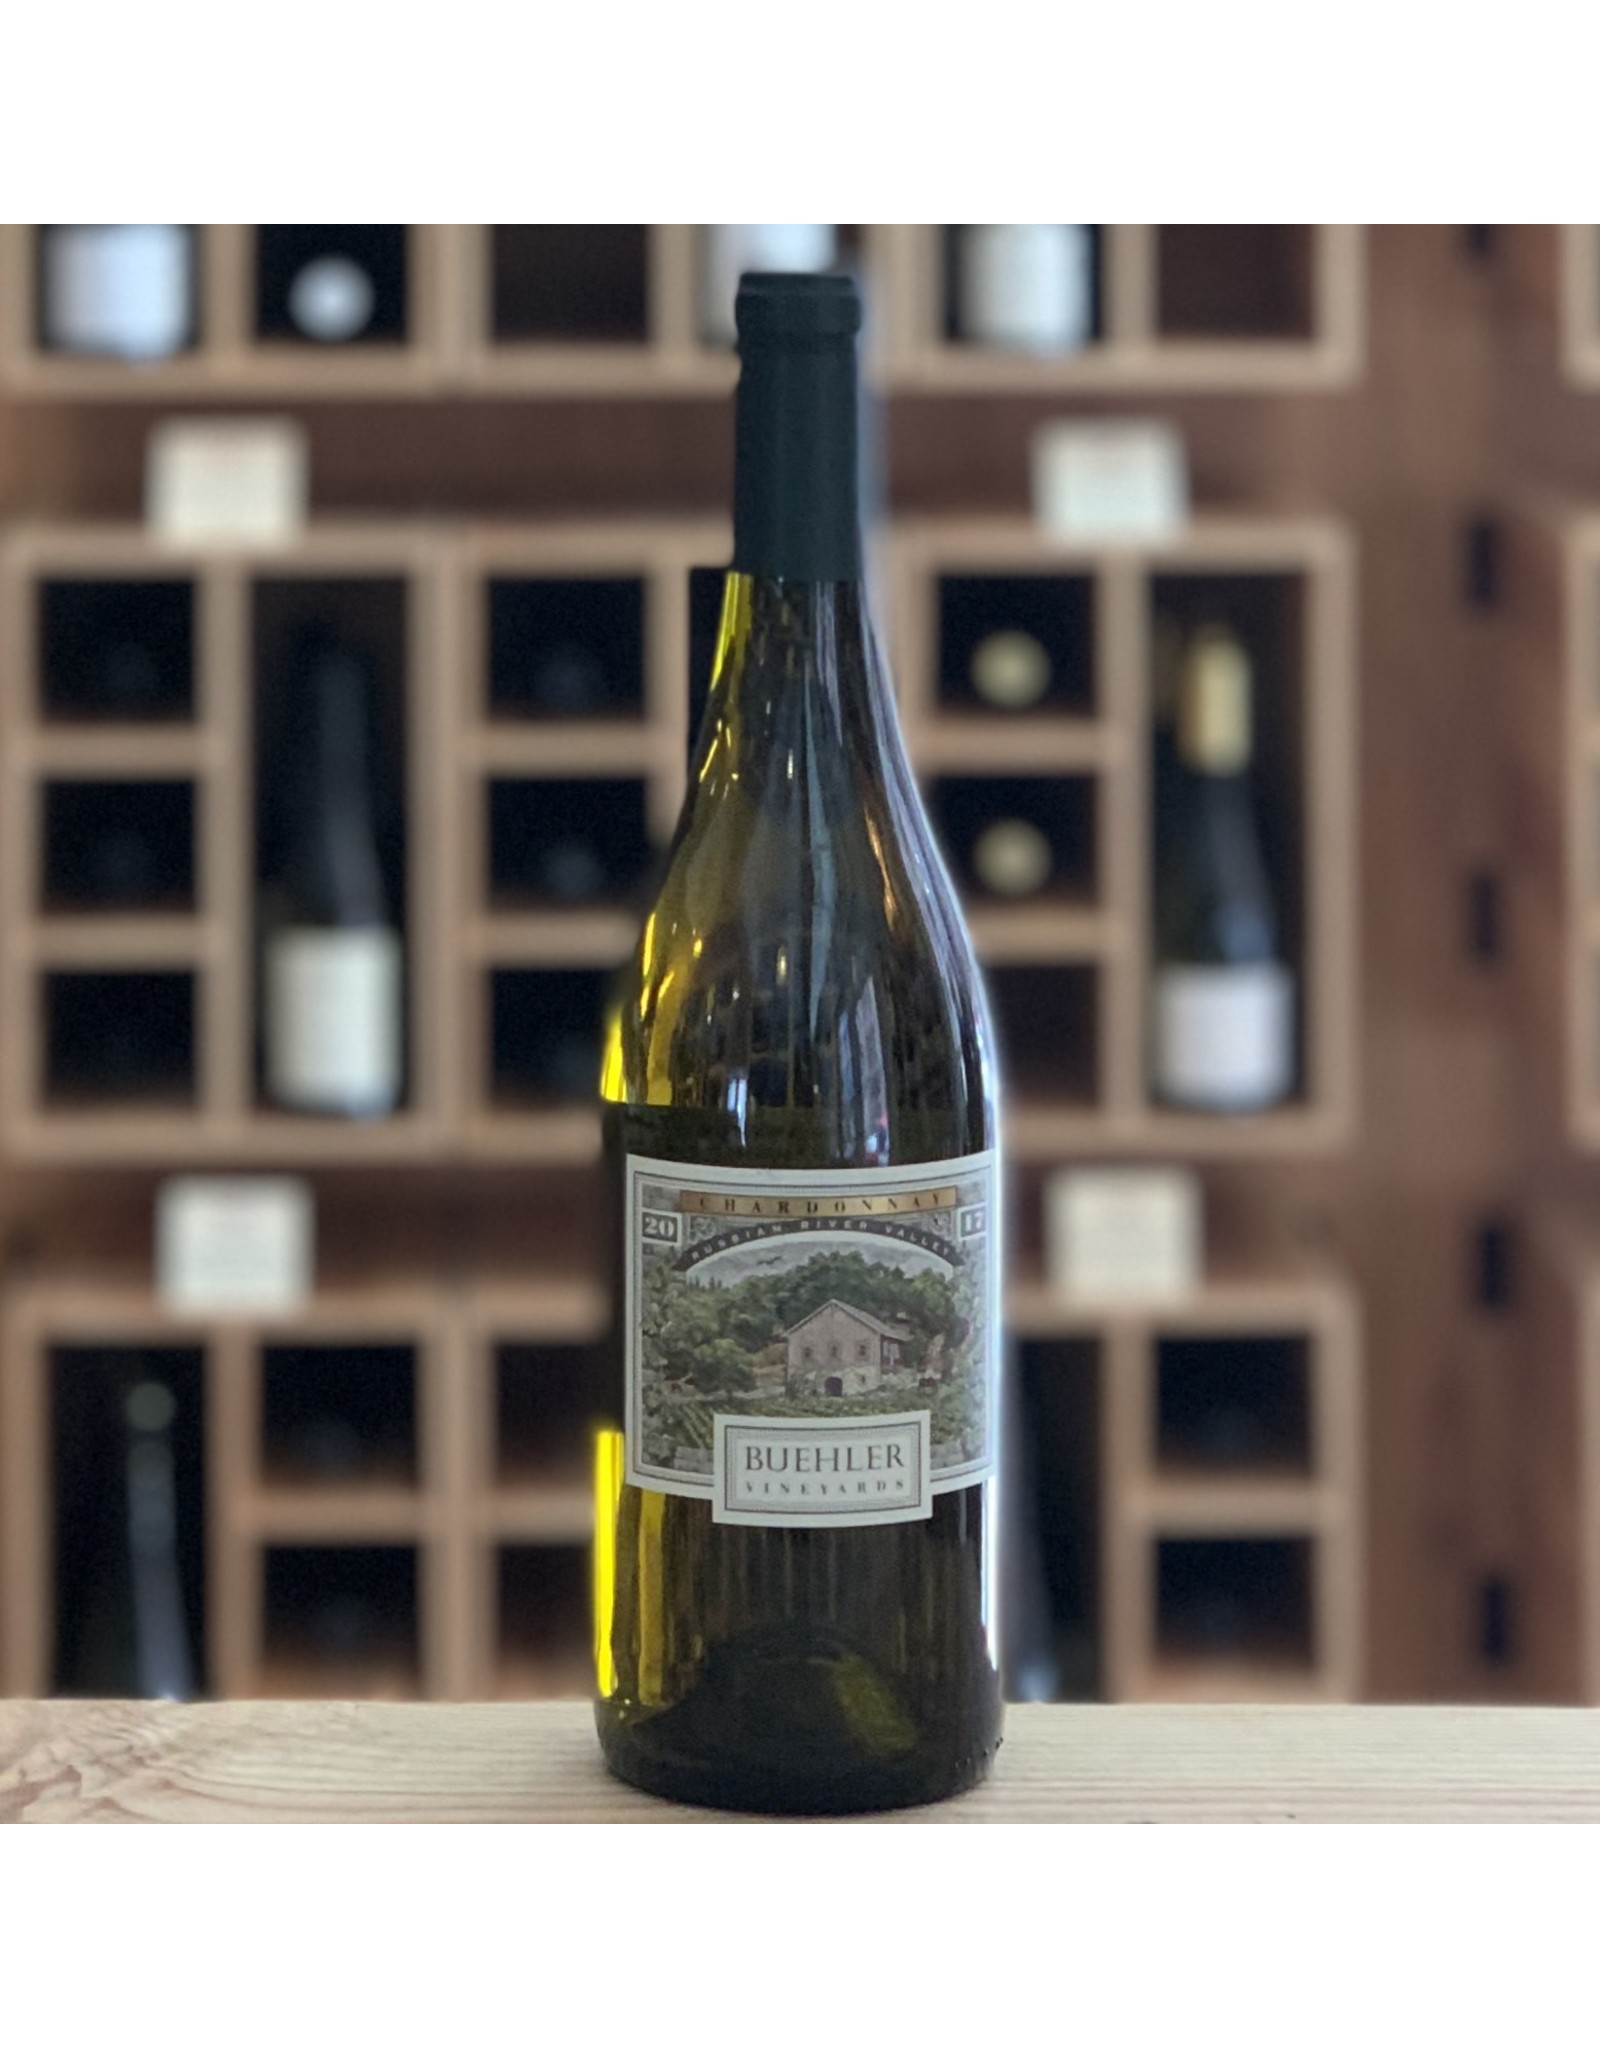 California Buehler Chardonnay 2017 - Russian River Valley, CA